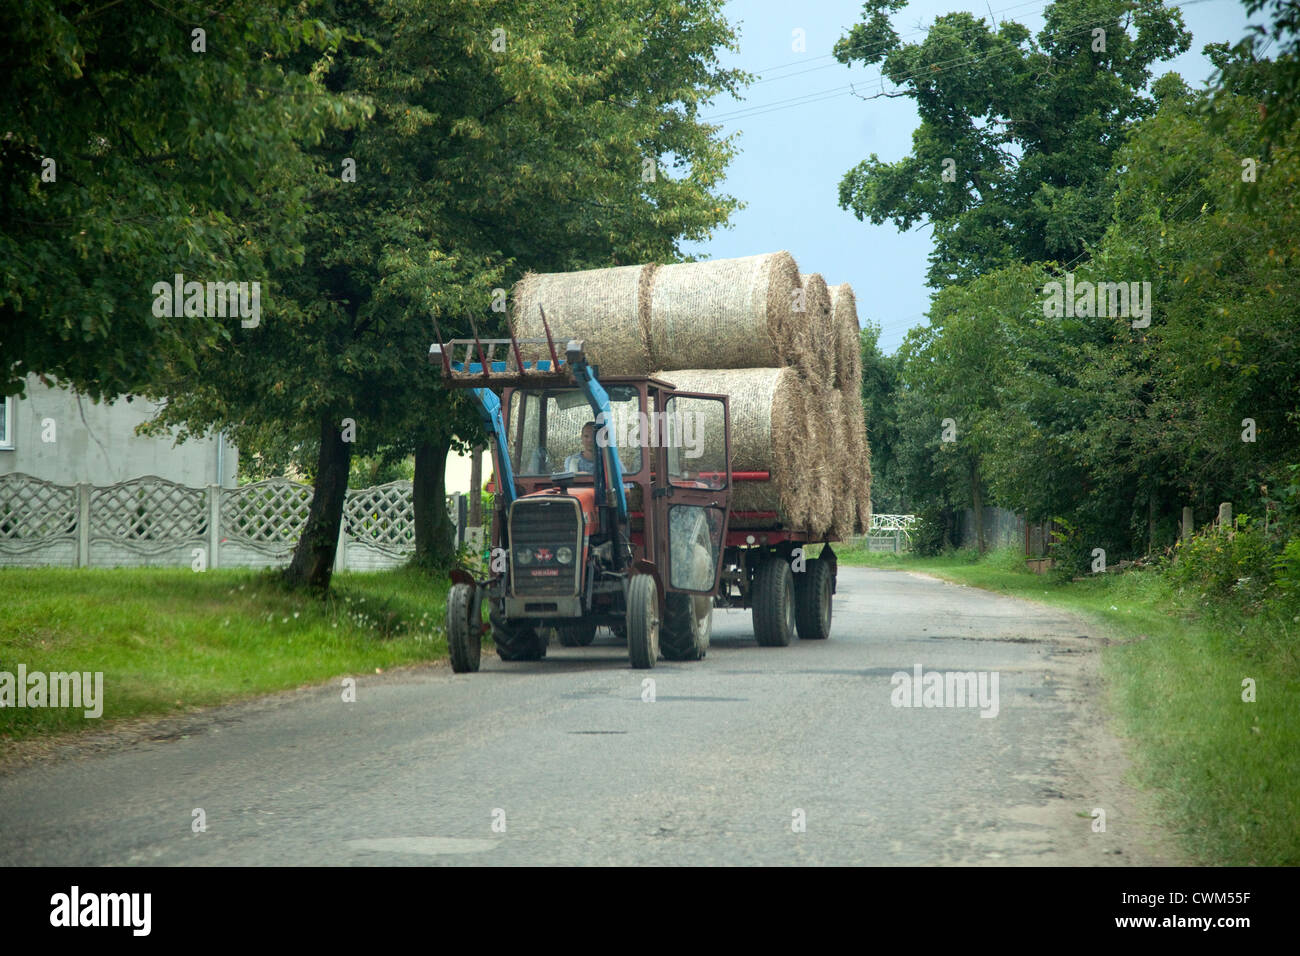 Cart full of farmers hay bails transported down village lane. Zawady Central Poland - Stock Image